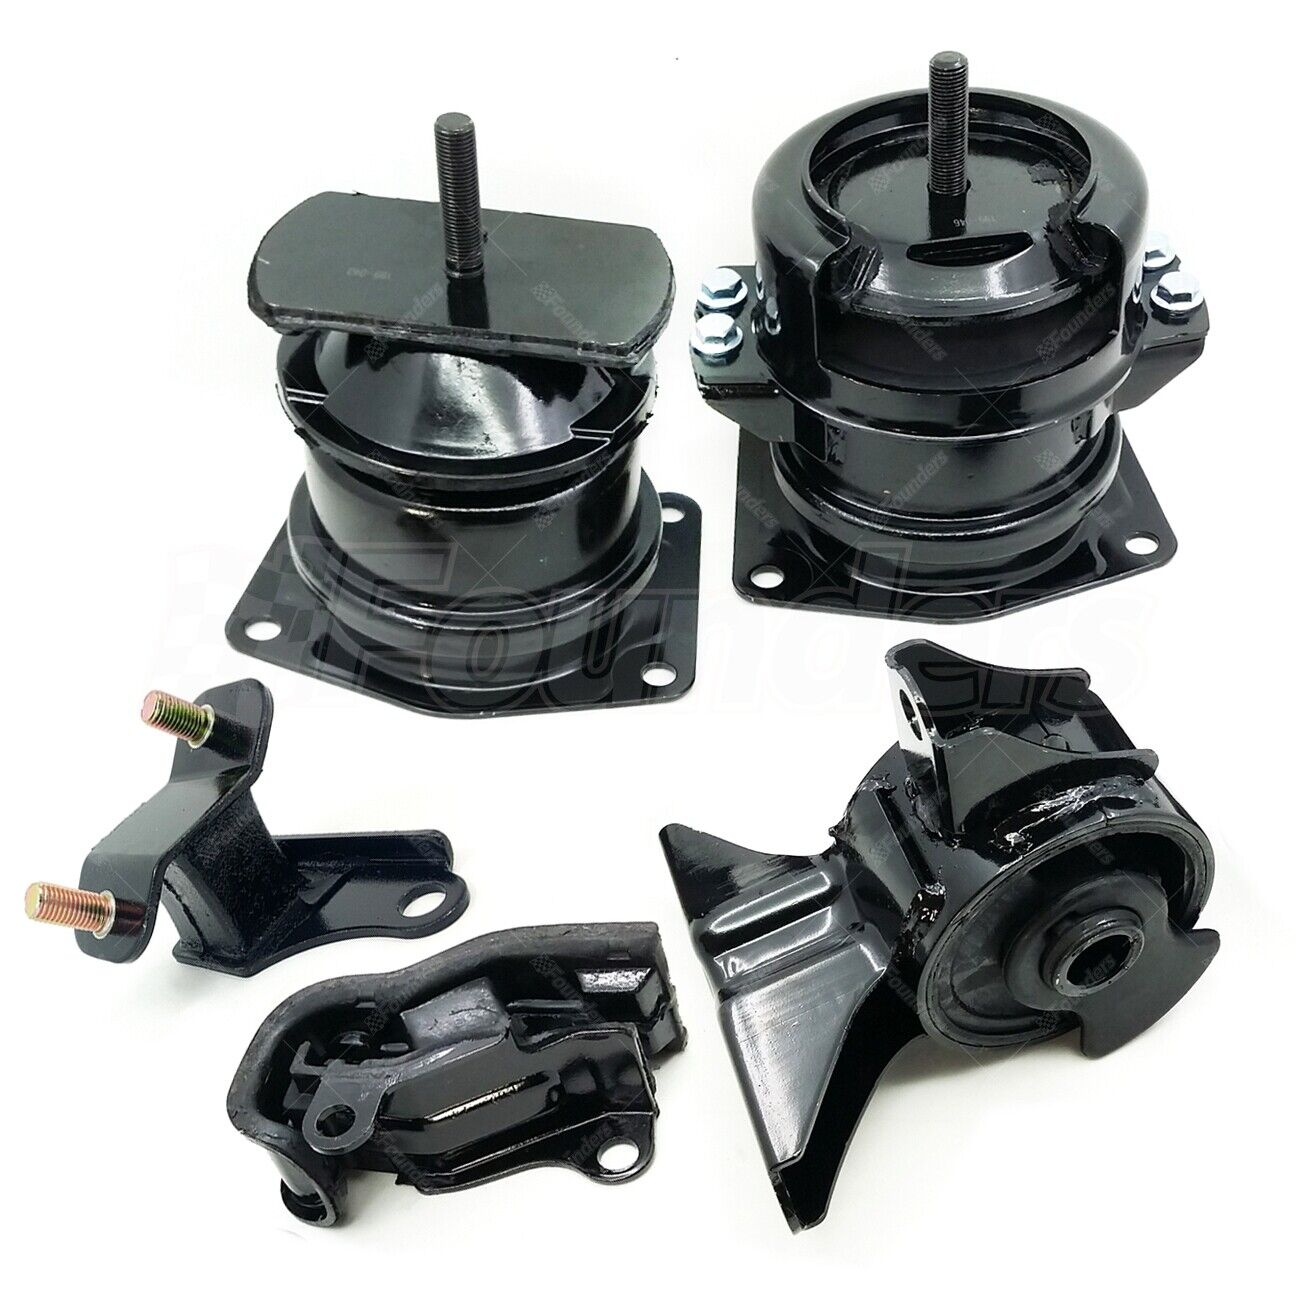 New Engine Motor & Transmission Mounts For 2000-2003 Acura